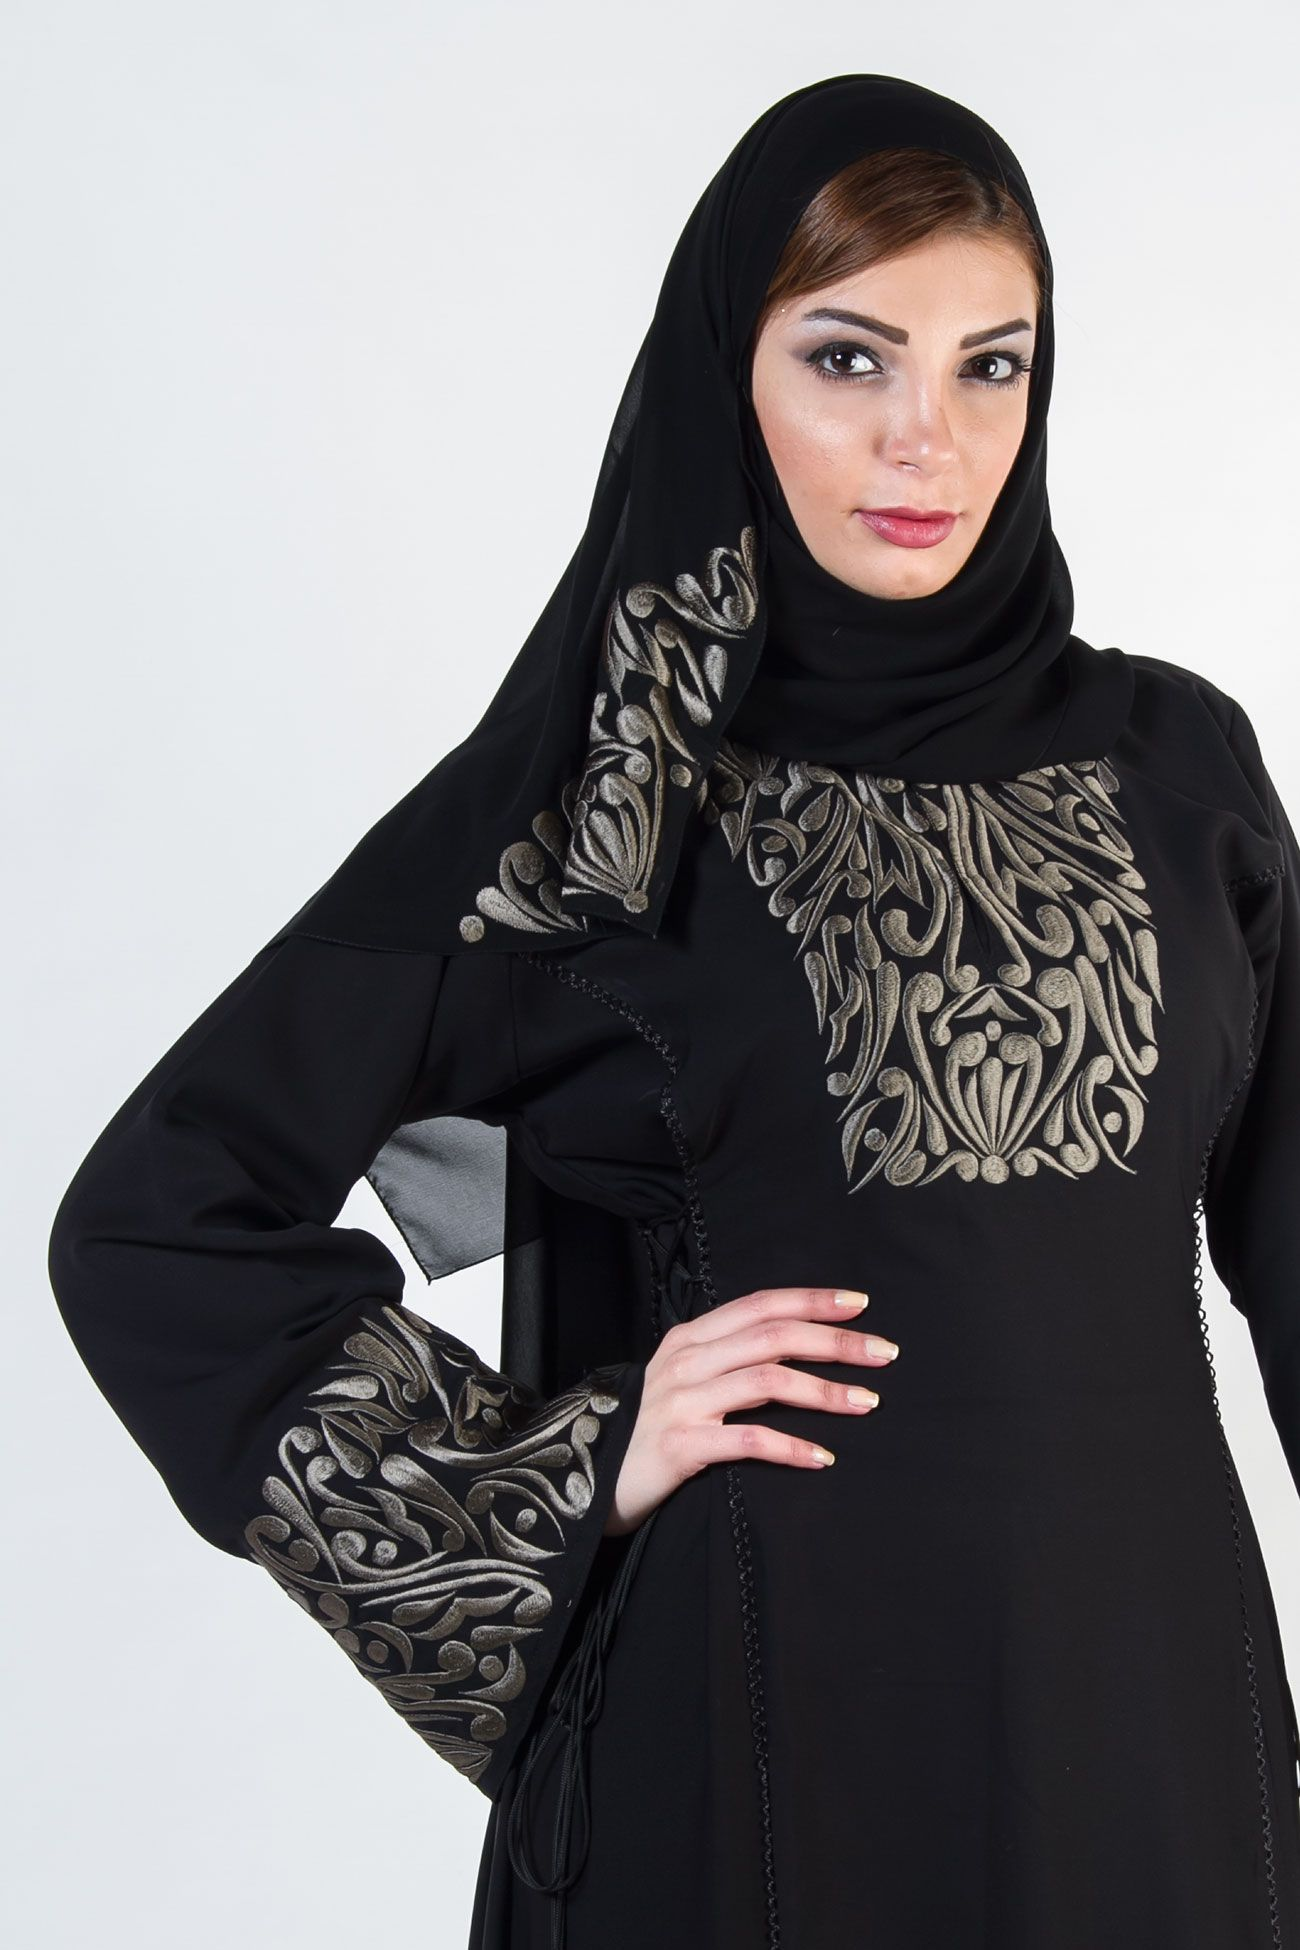 c1392fab7336a Beautiful rich quad embroidered abaya from o3bay in classic black  fabric.This abaya has detailed embroidery work on the front and sleeves.